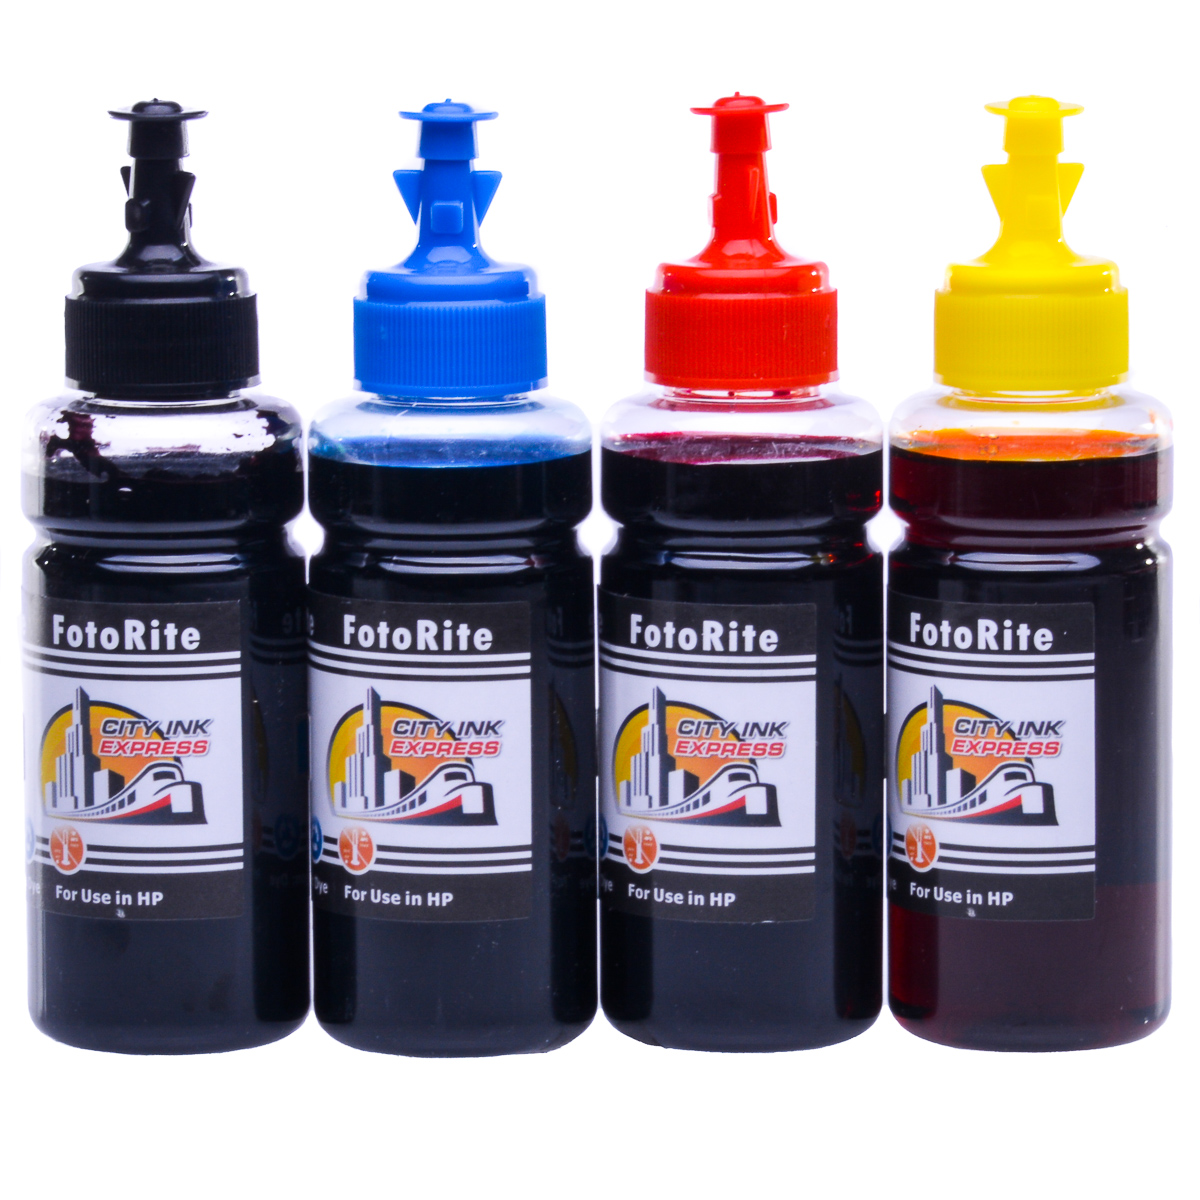 Cheap Multipack dye ink refill replaces HP Photosmart Photosmart B109c